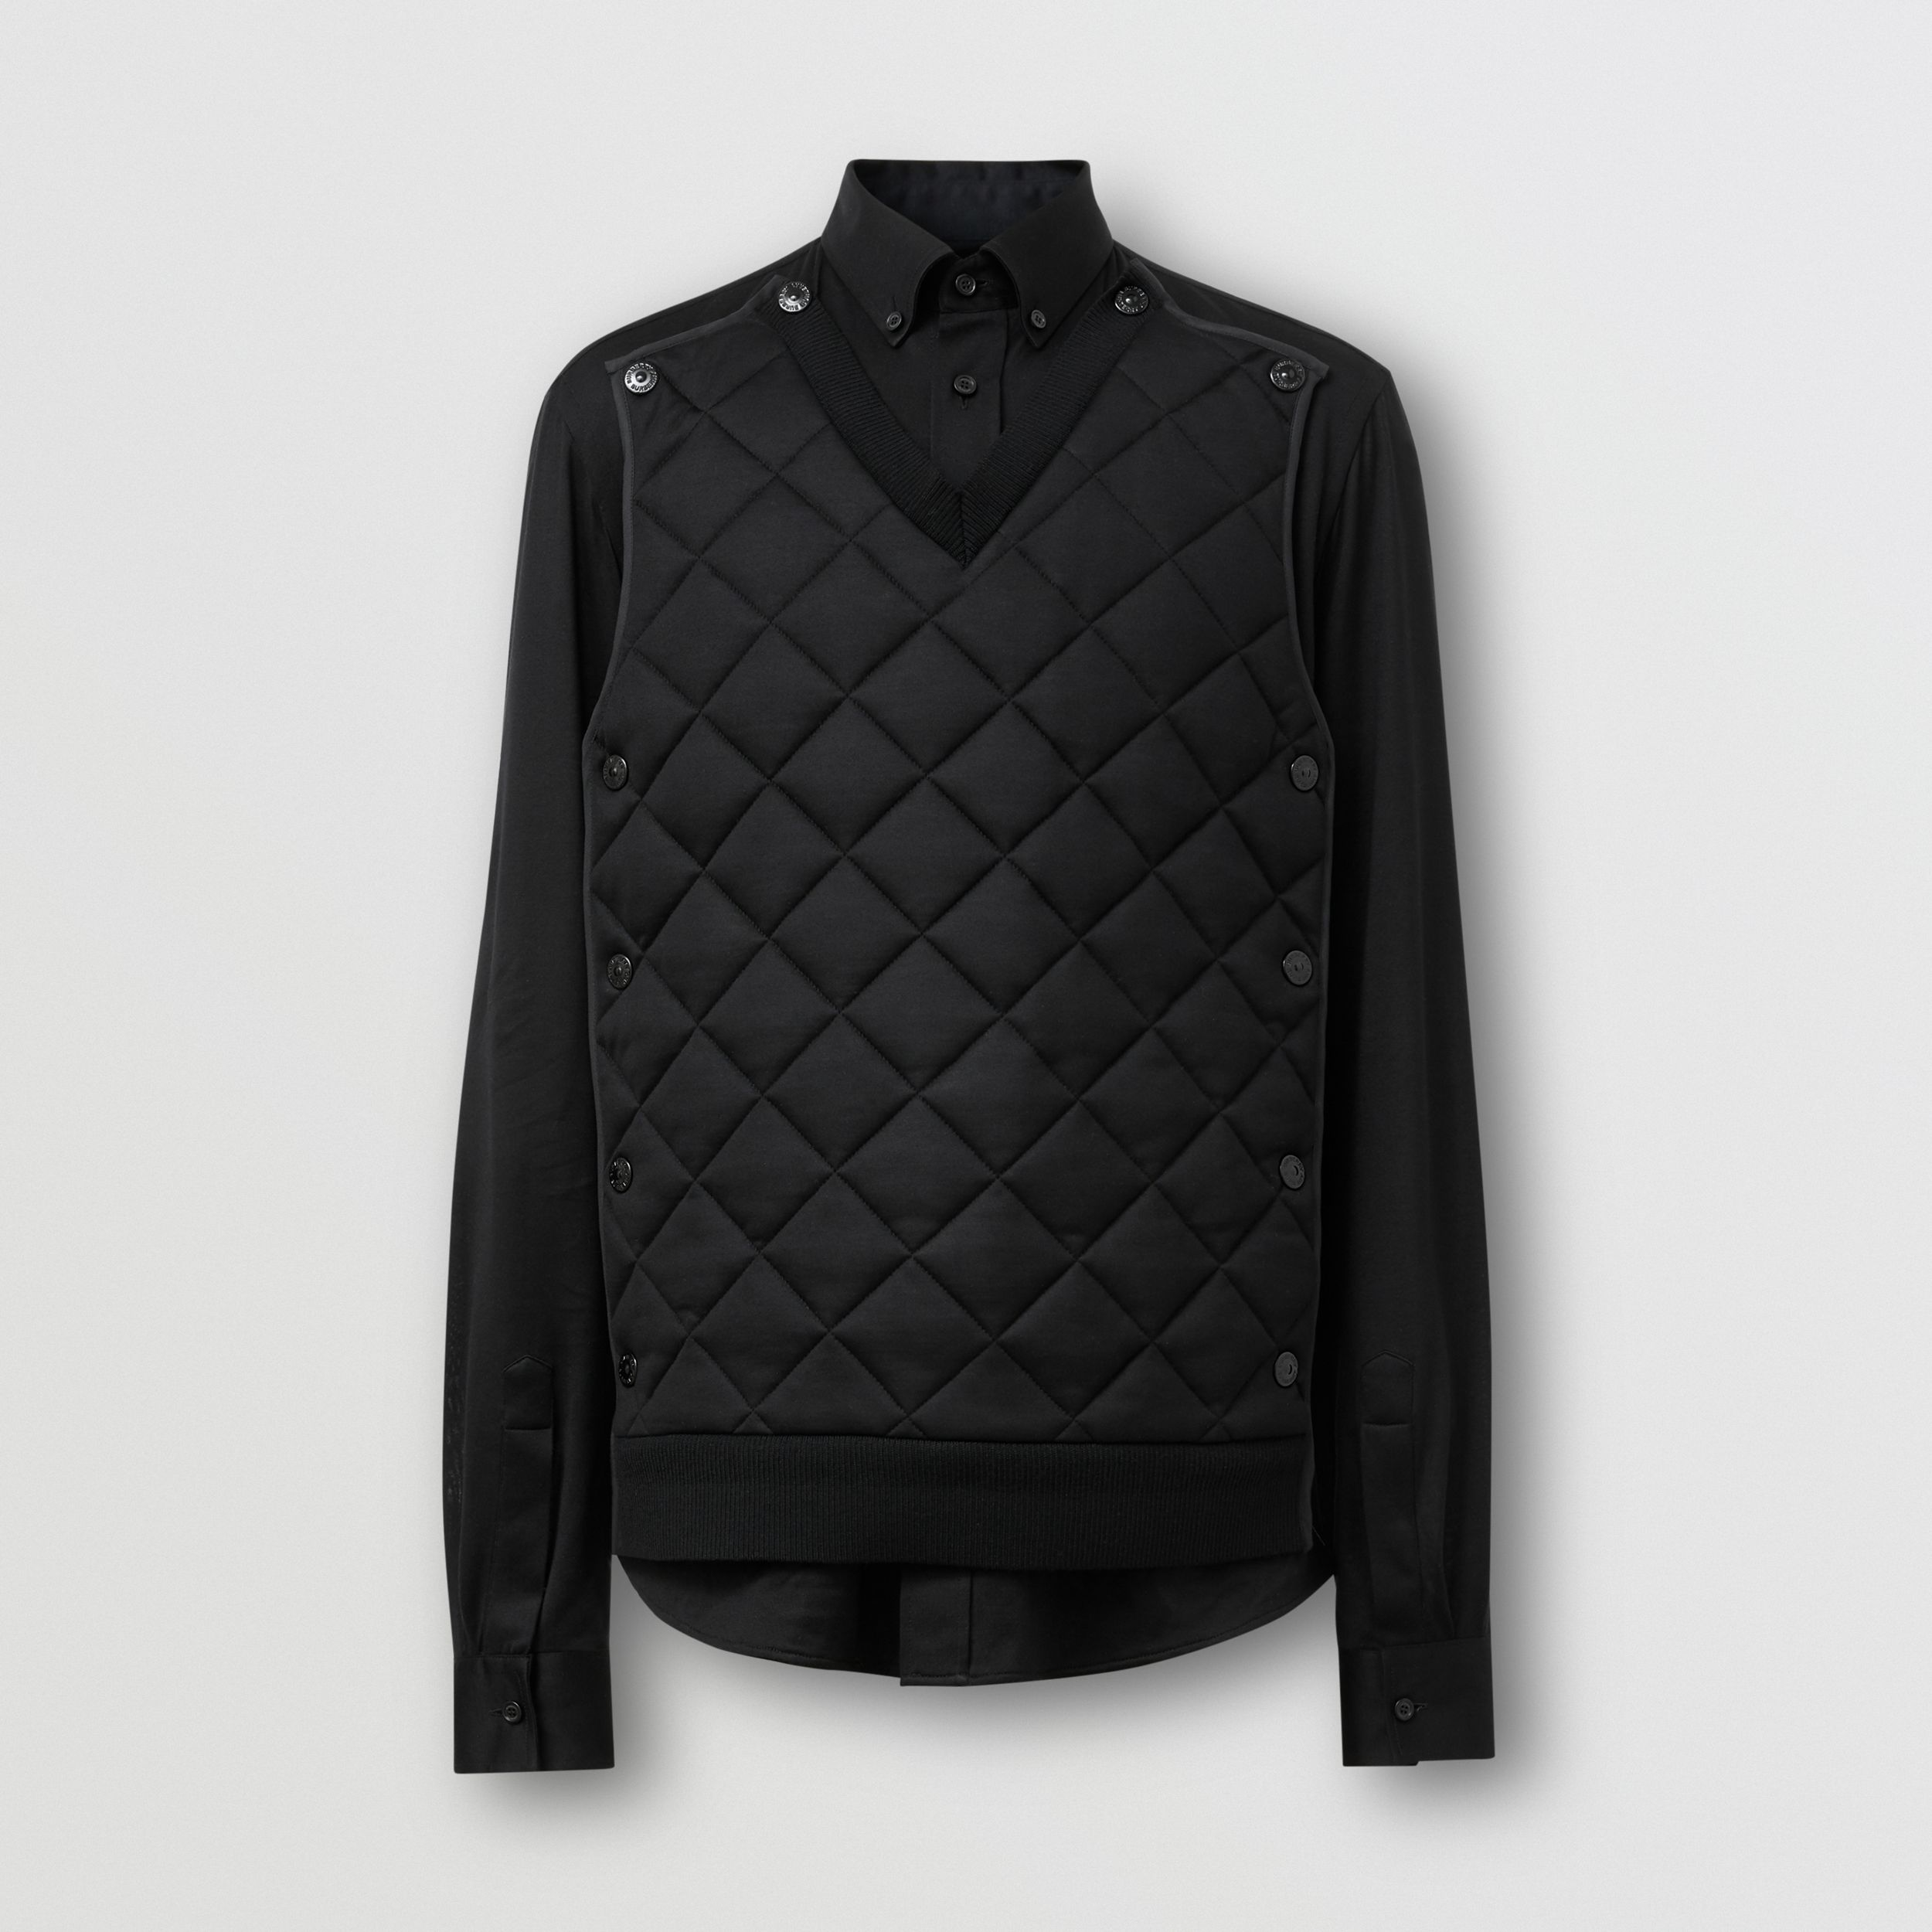 Classic Fit Detachable Quilted Panel Silk Jersey Shirt in Black | Burberry - 4